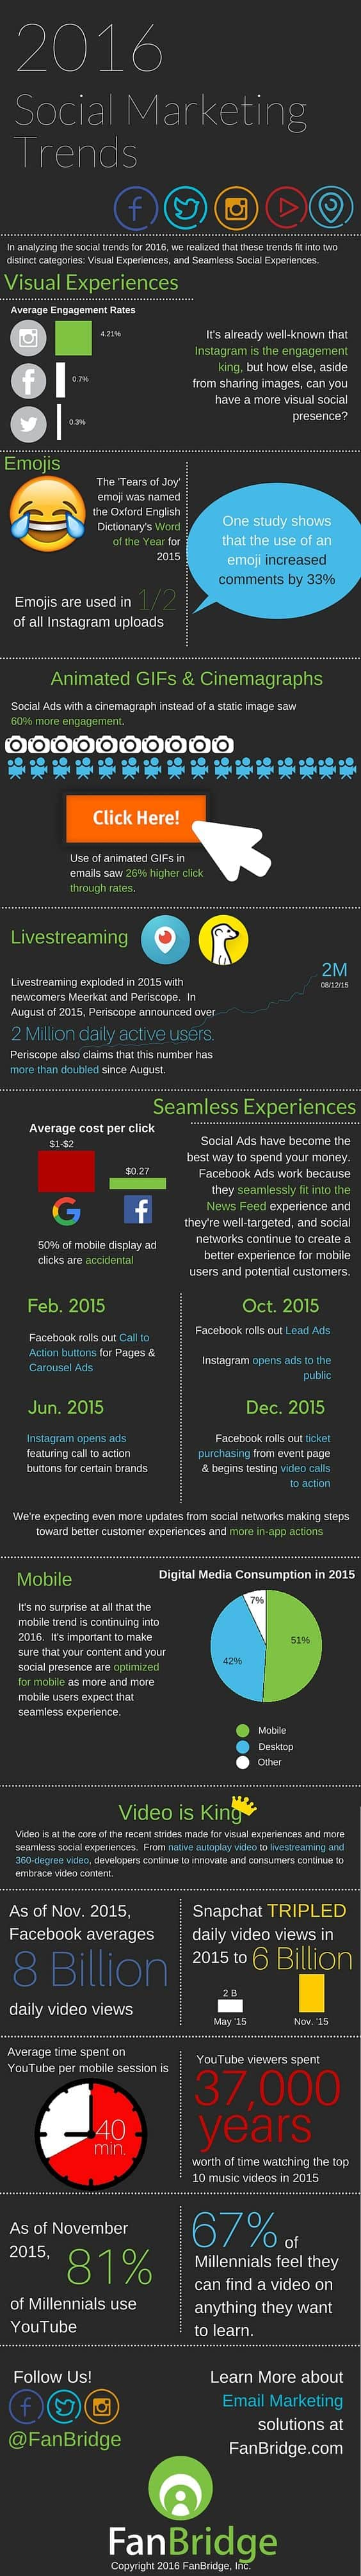 2016 Social Media Trends Infographic